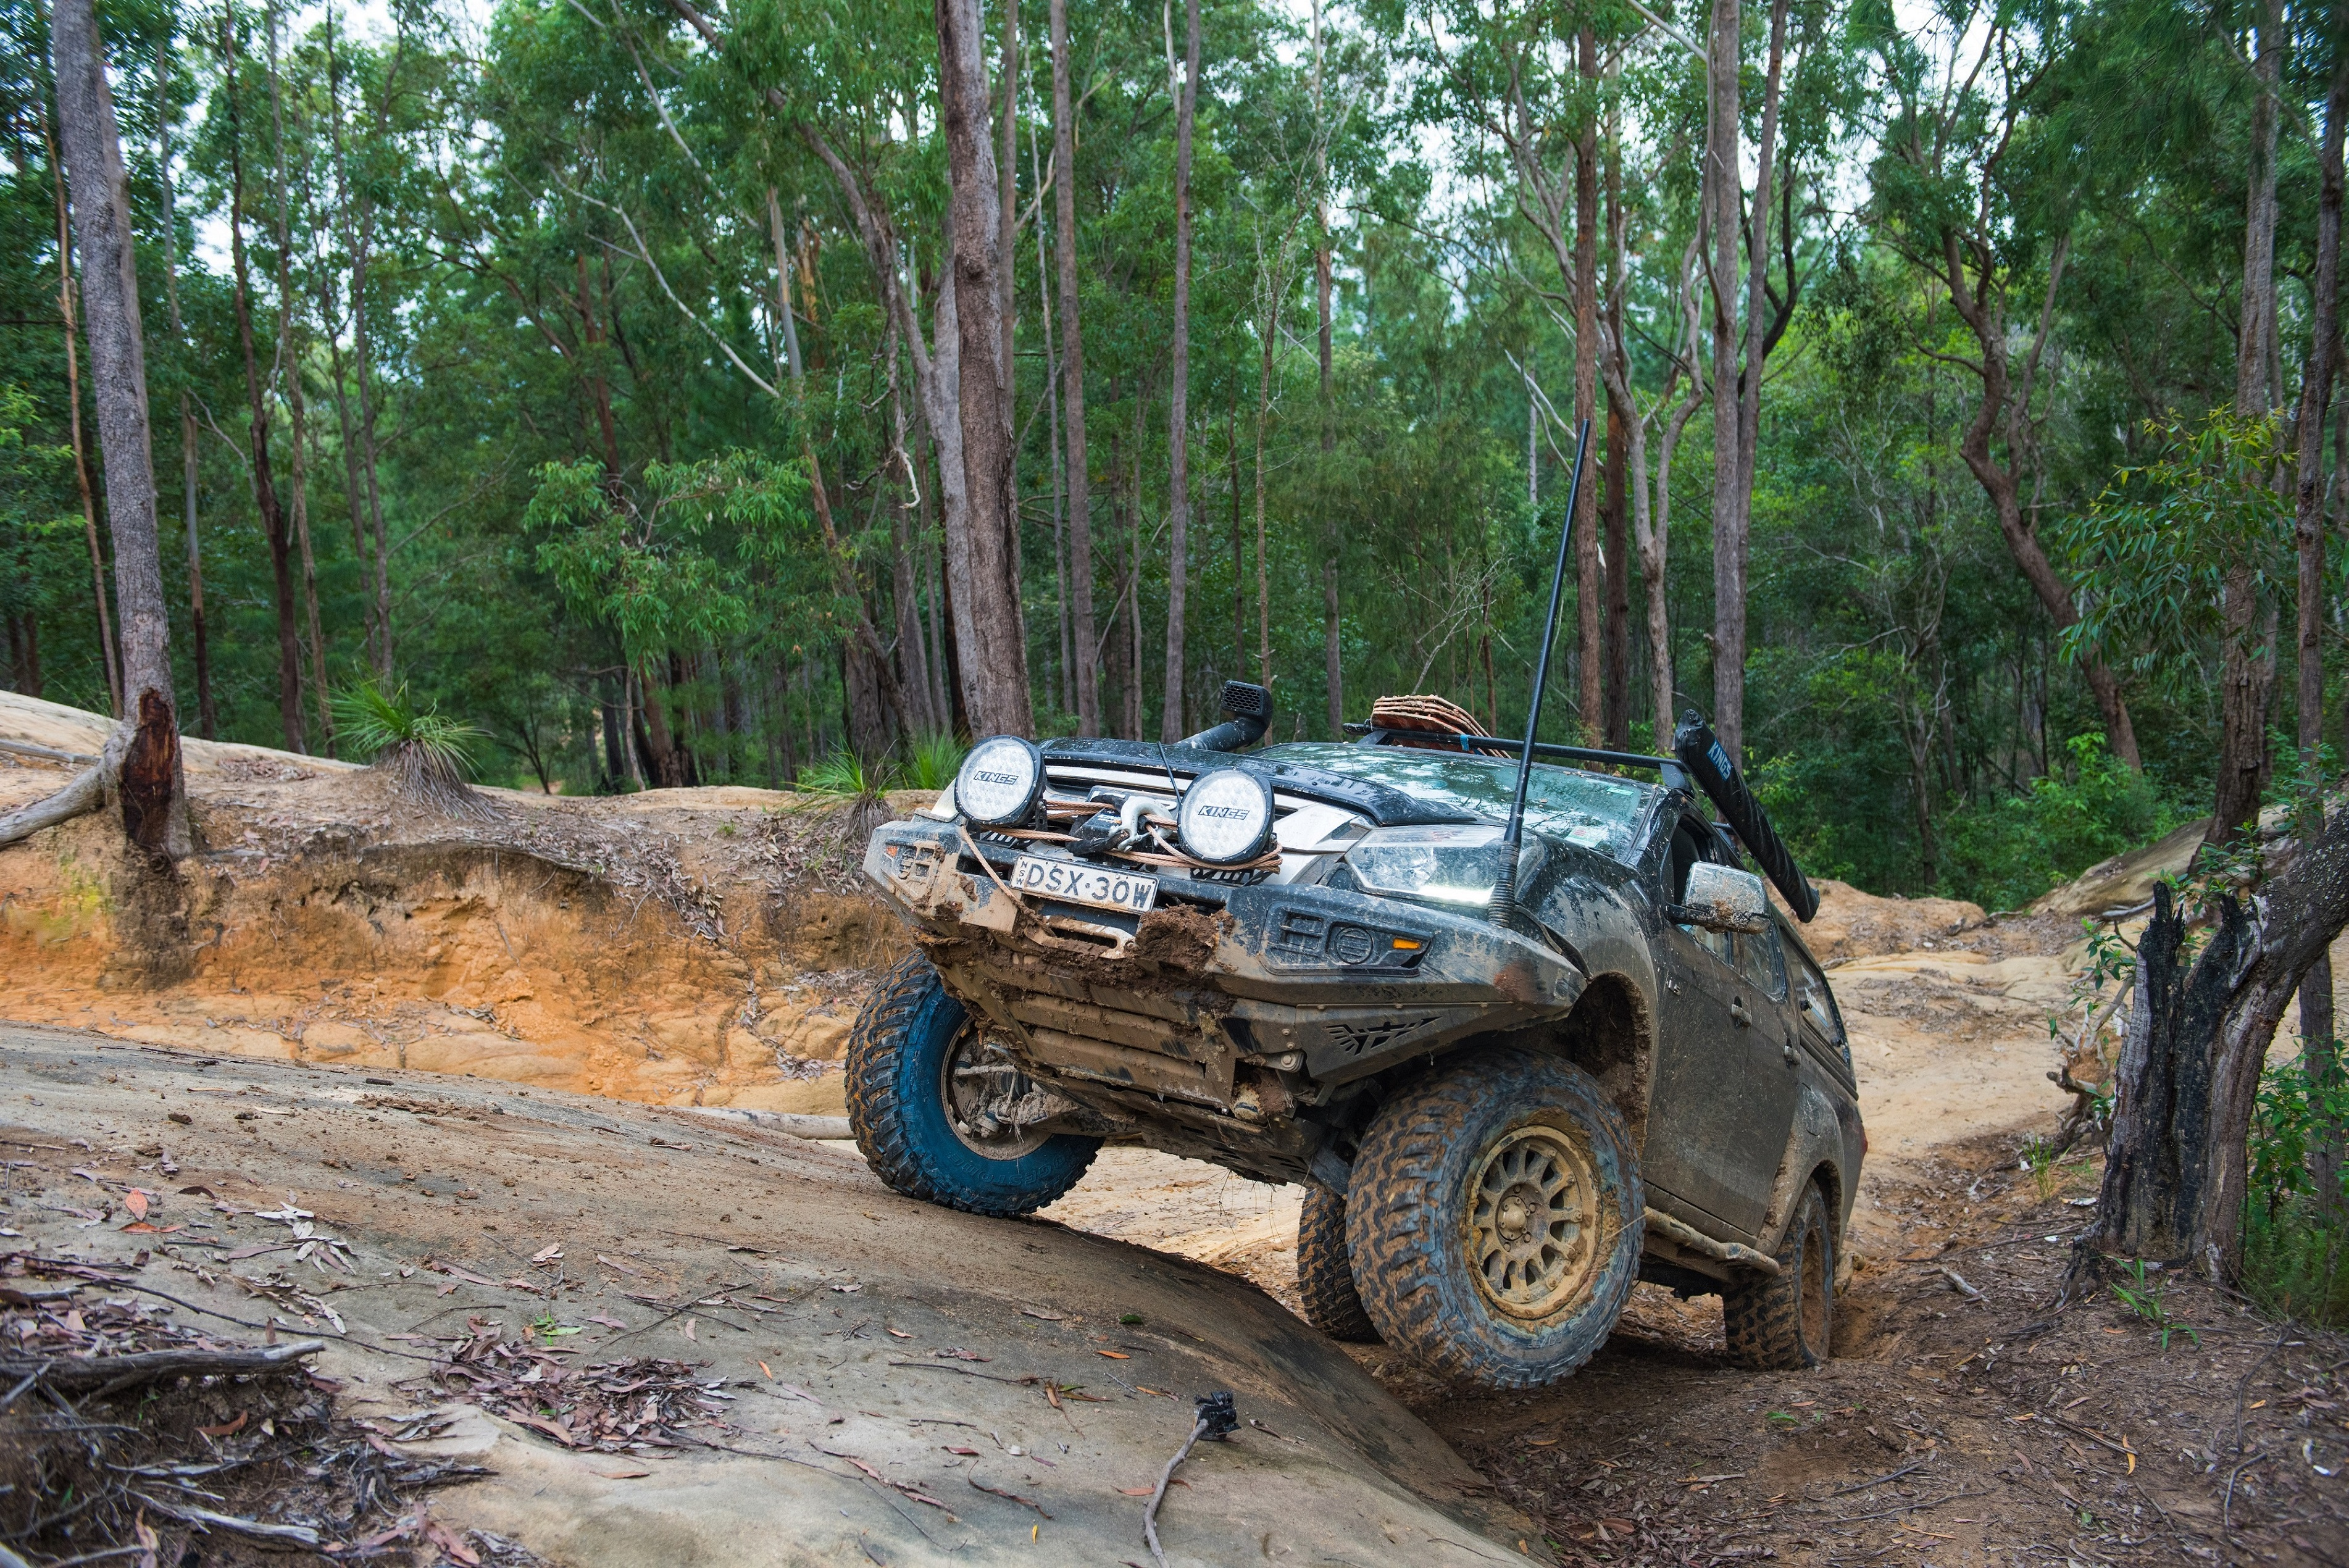 Touring setups 101 - Get out for less with Adventure Kings Gear! - image Glasshouse-driving-8156 on https://www.4wdsupacentre.com.au/news